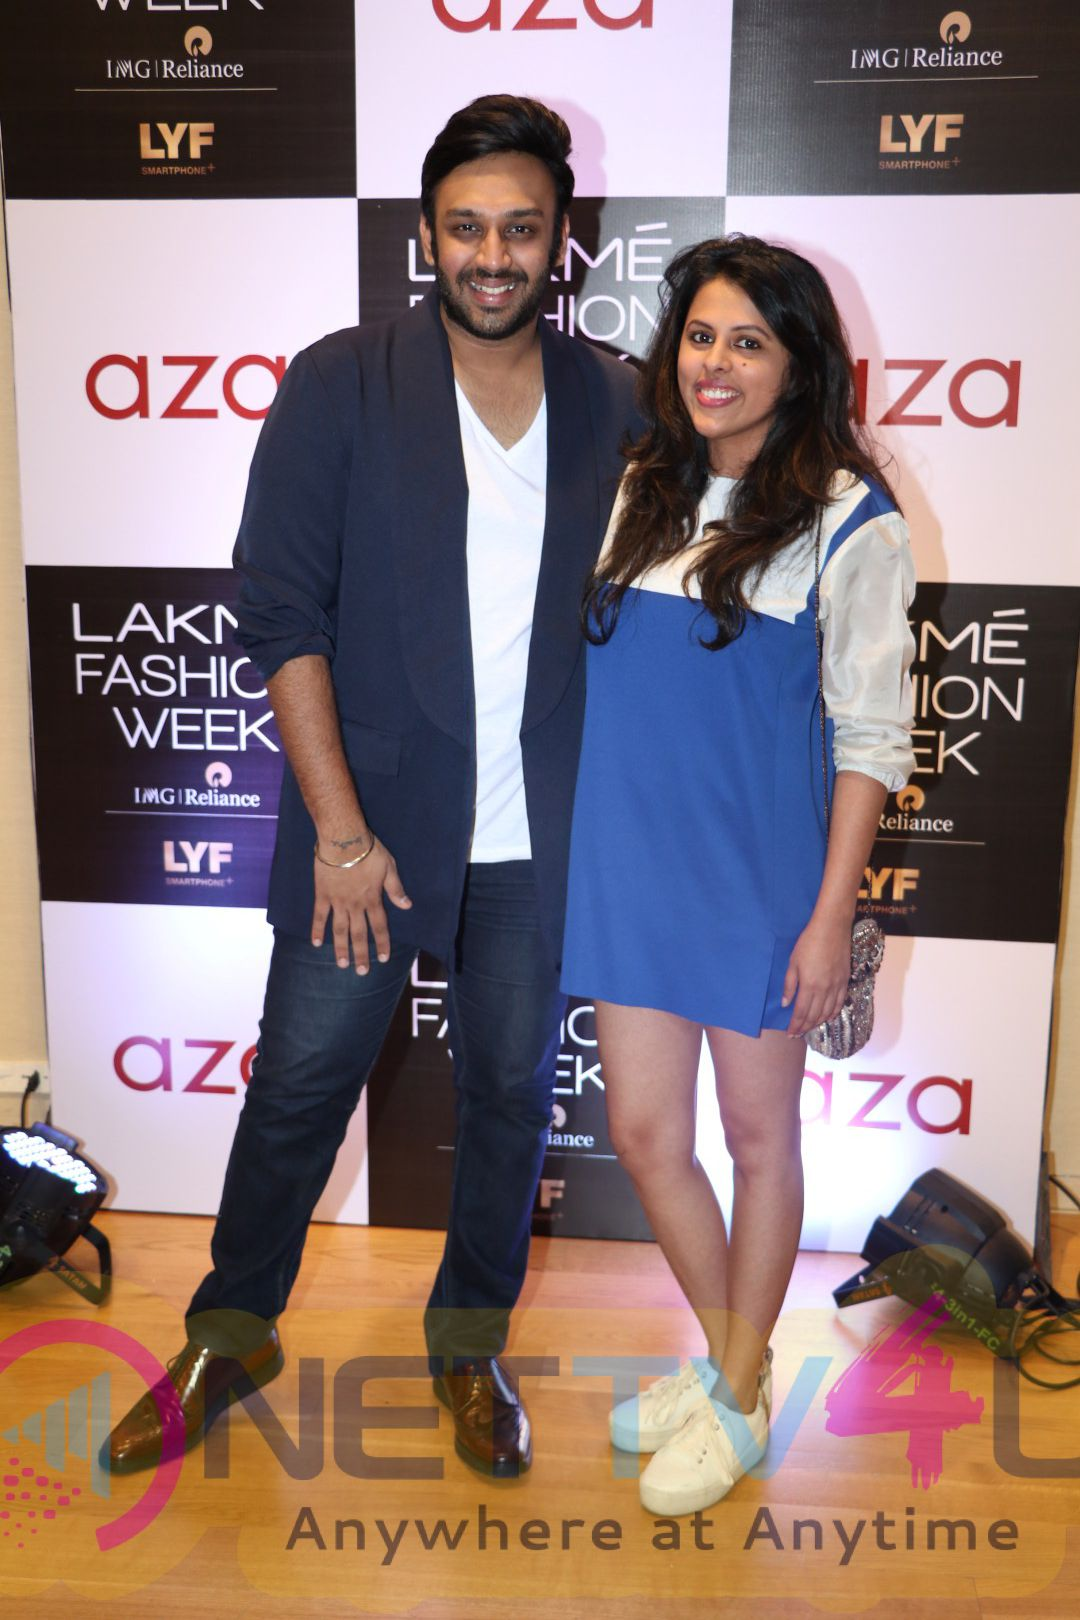 Aza Collection With Lakme Attractive Stills